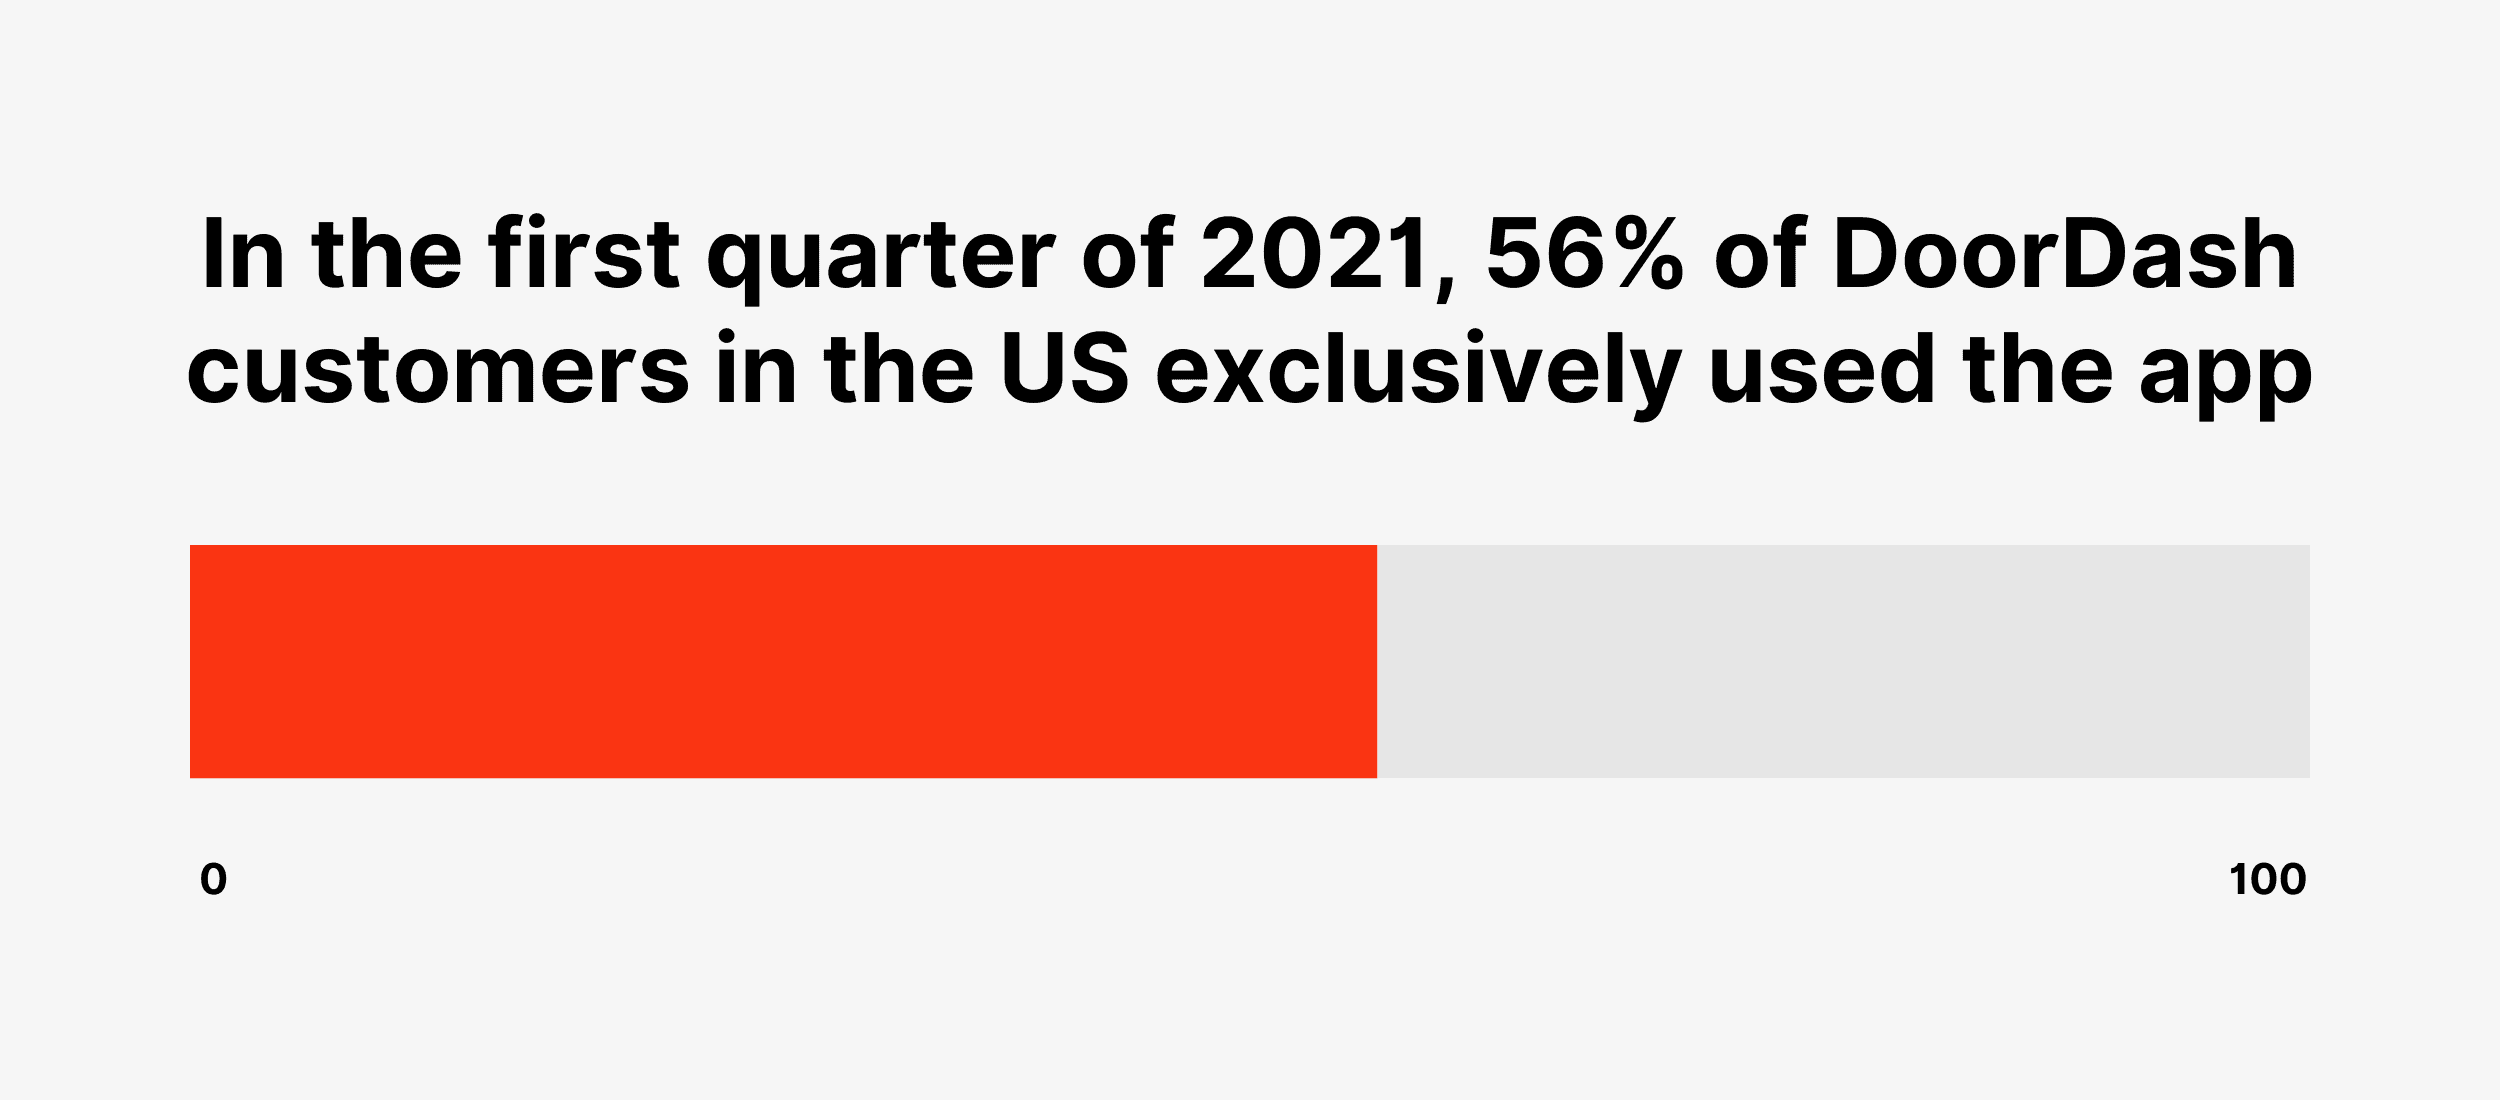 In the first quarter of 2021, 56% of DoorDash customers in the US exclusively used the app